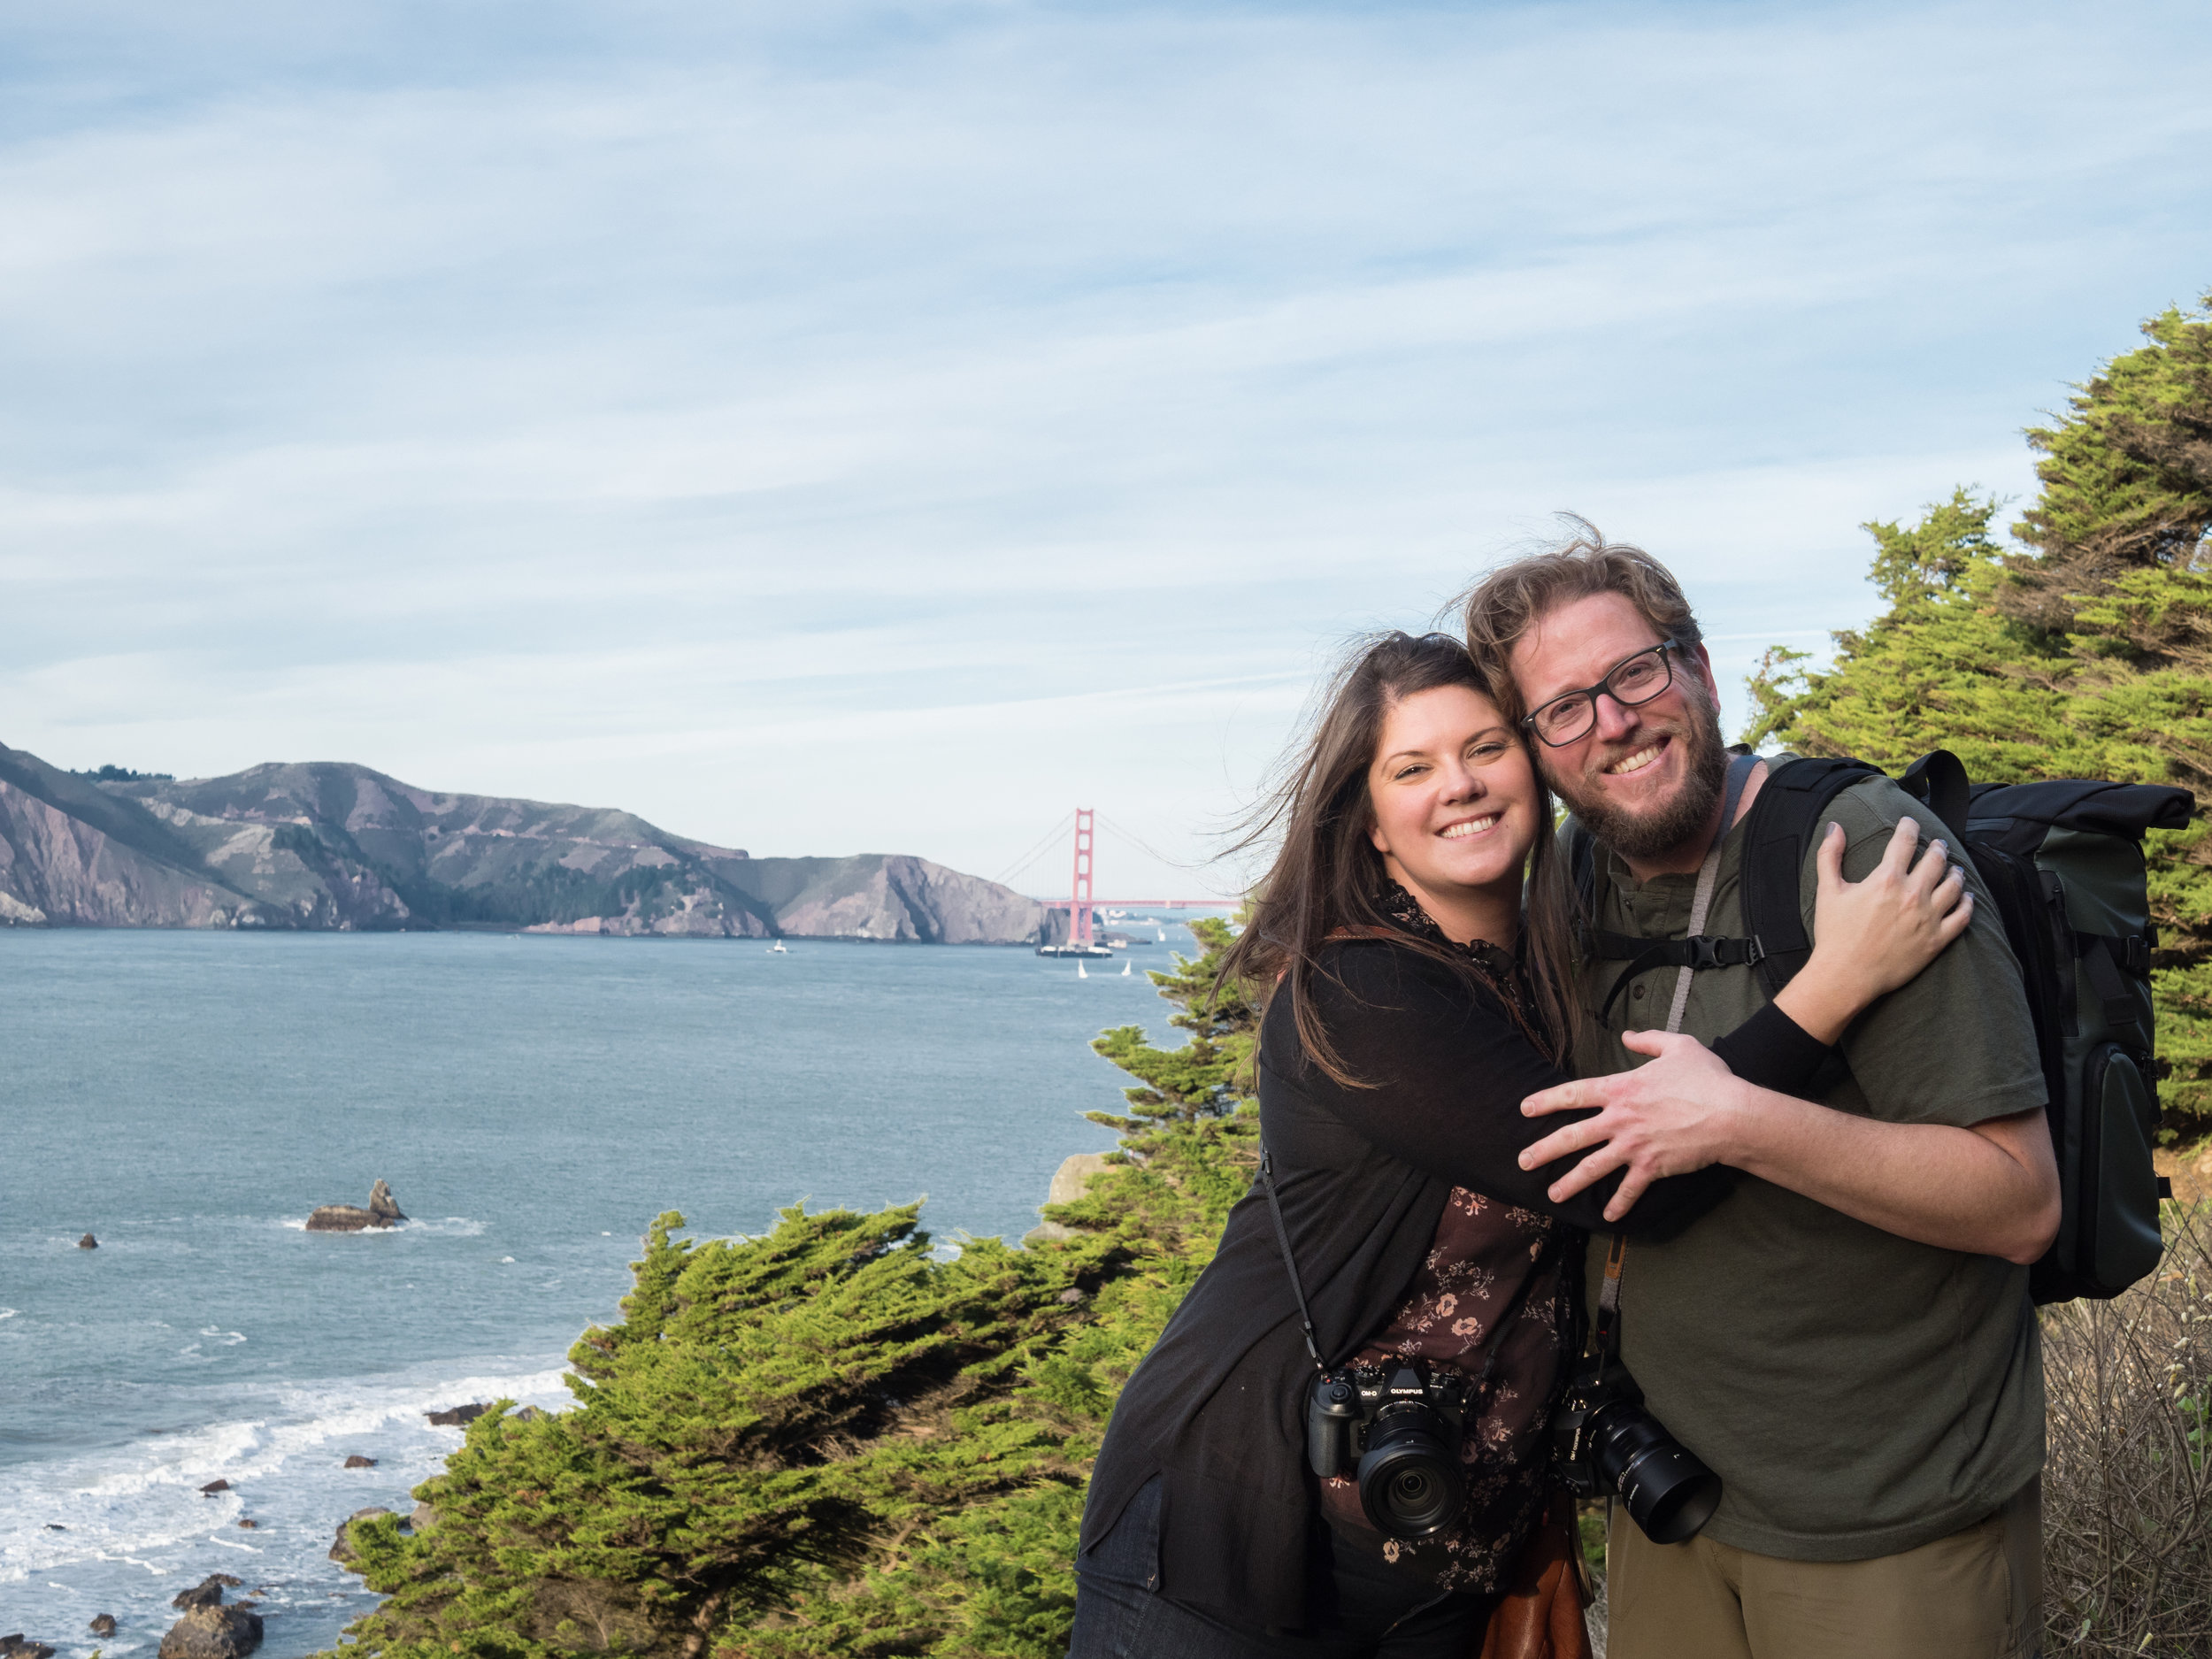 Eric and Mary with the Golden Gate behind.